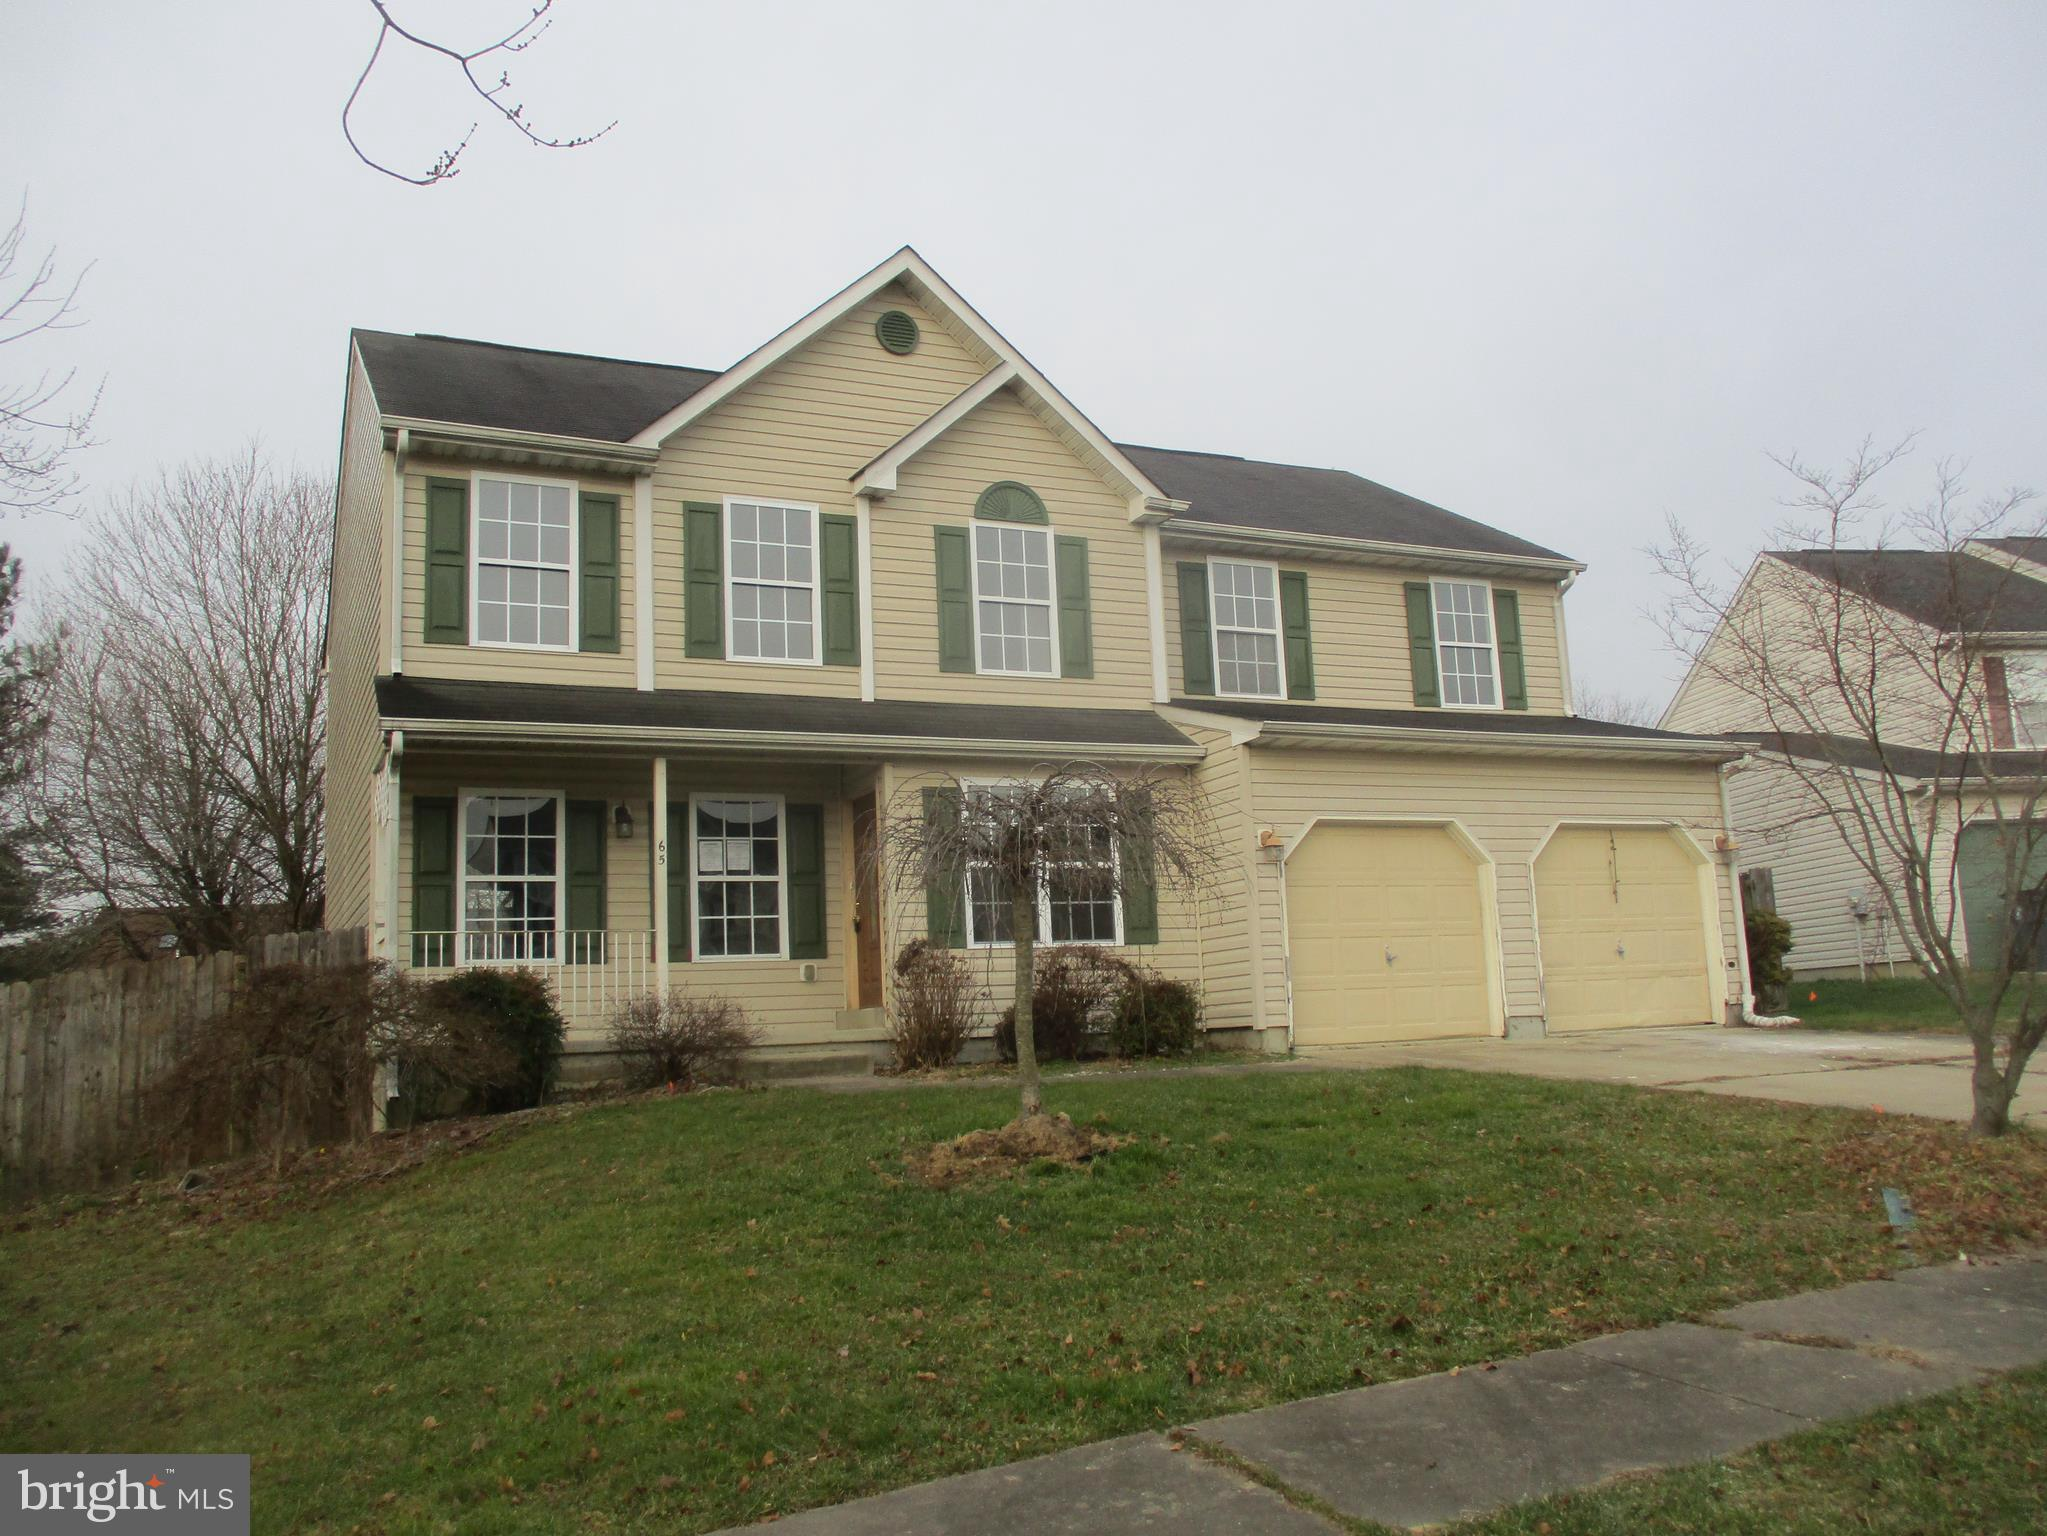 Elkton Colonial with 4 bedrooms, 2.5 baths.  Amenities include kitchen island, 2 car attached garage